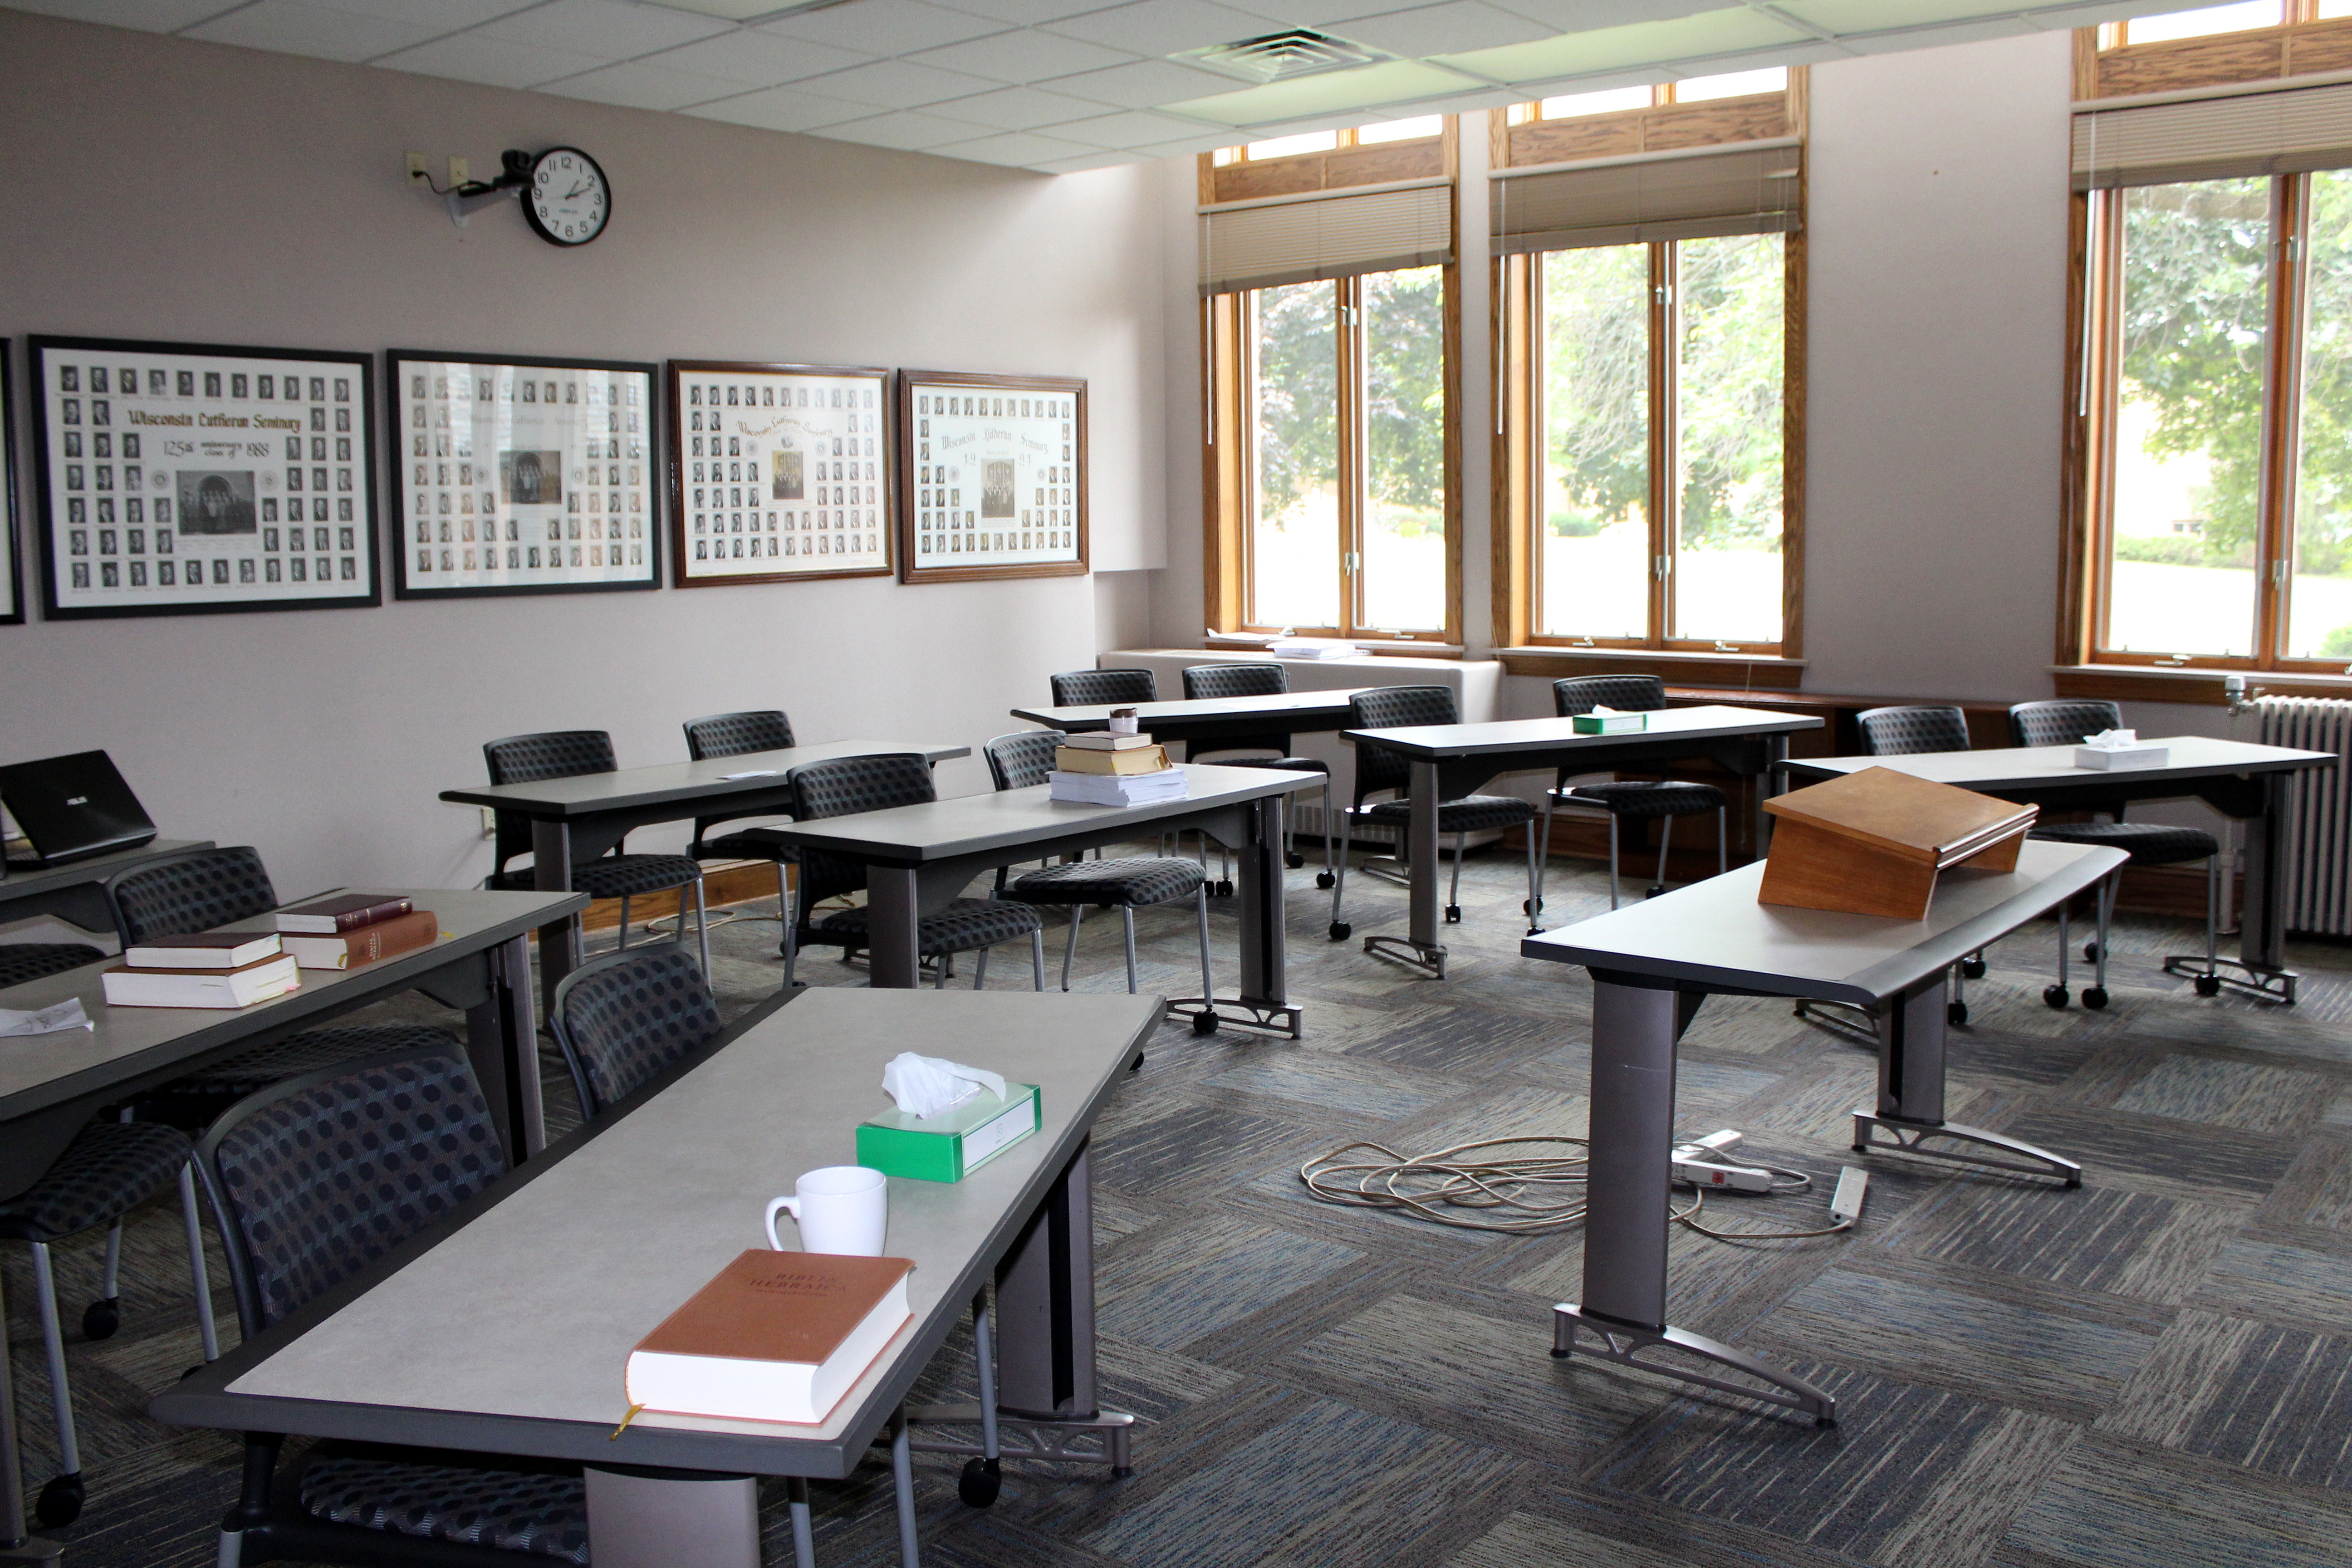 wls essay file Essays wls essay file wels about wls there are currently over 4300 essays, 48 audio essays, and 14 videos online welcome to the wisconsin lutheran seminary online.